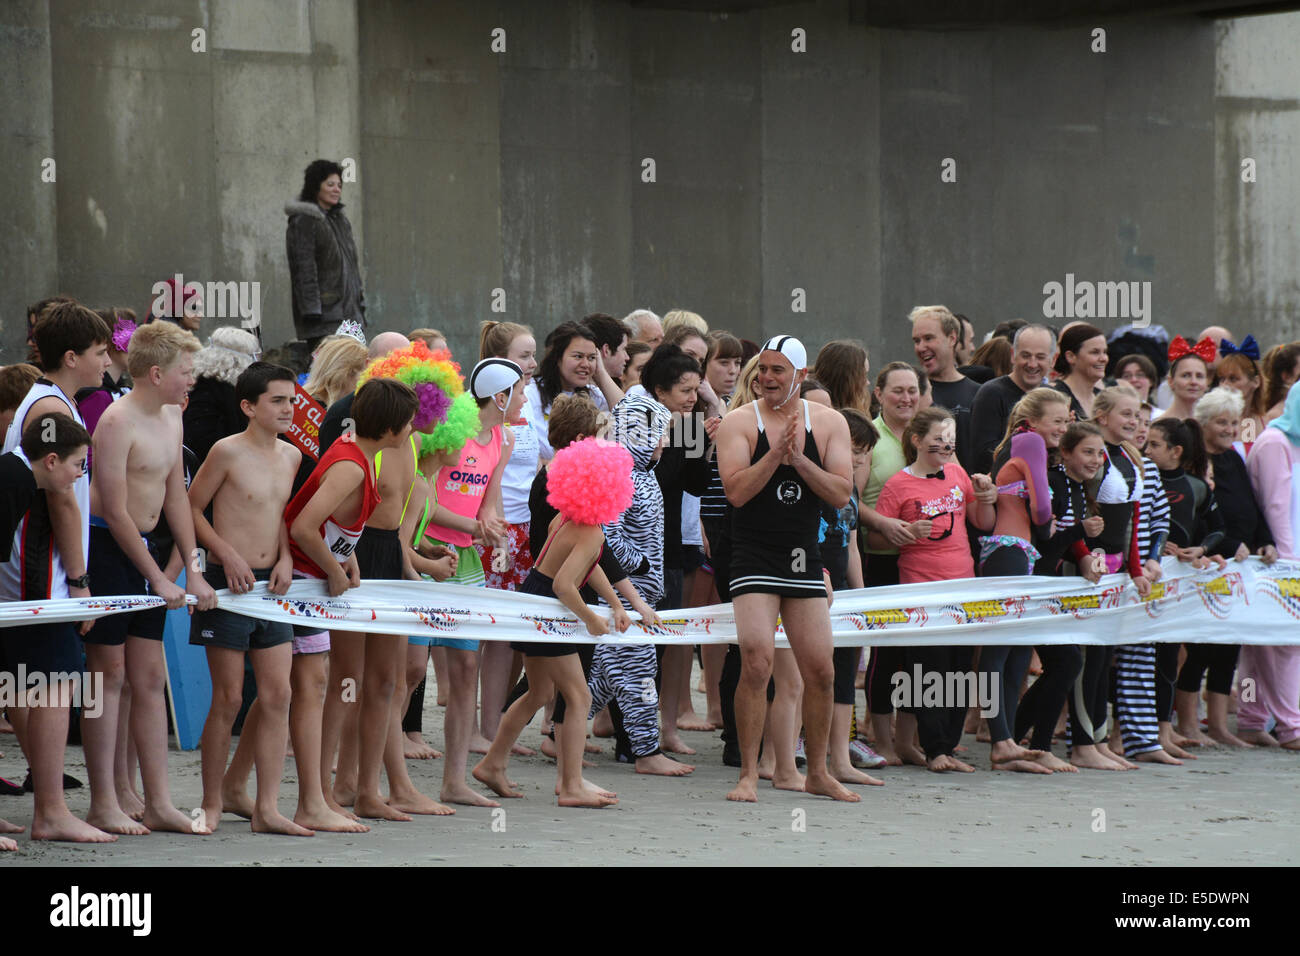 Swimmers getting ready for the Dunedin's annual midwinter Polar Plunge held at St Clair Esplanade. - Stock Image